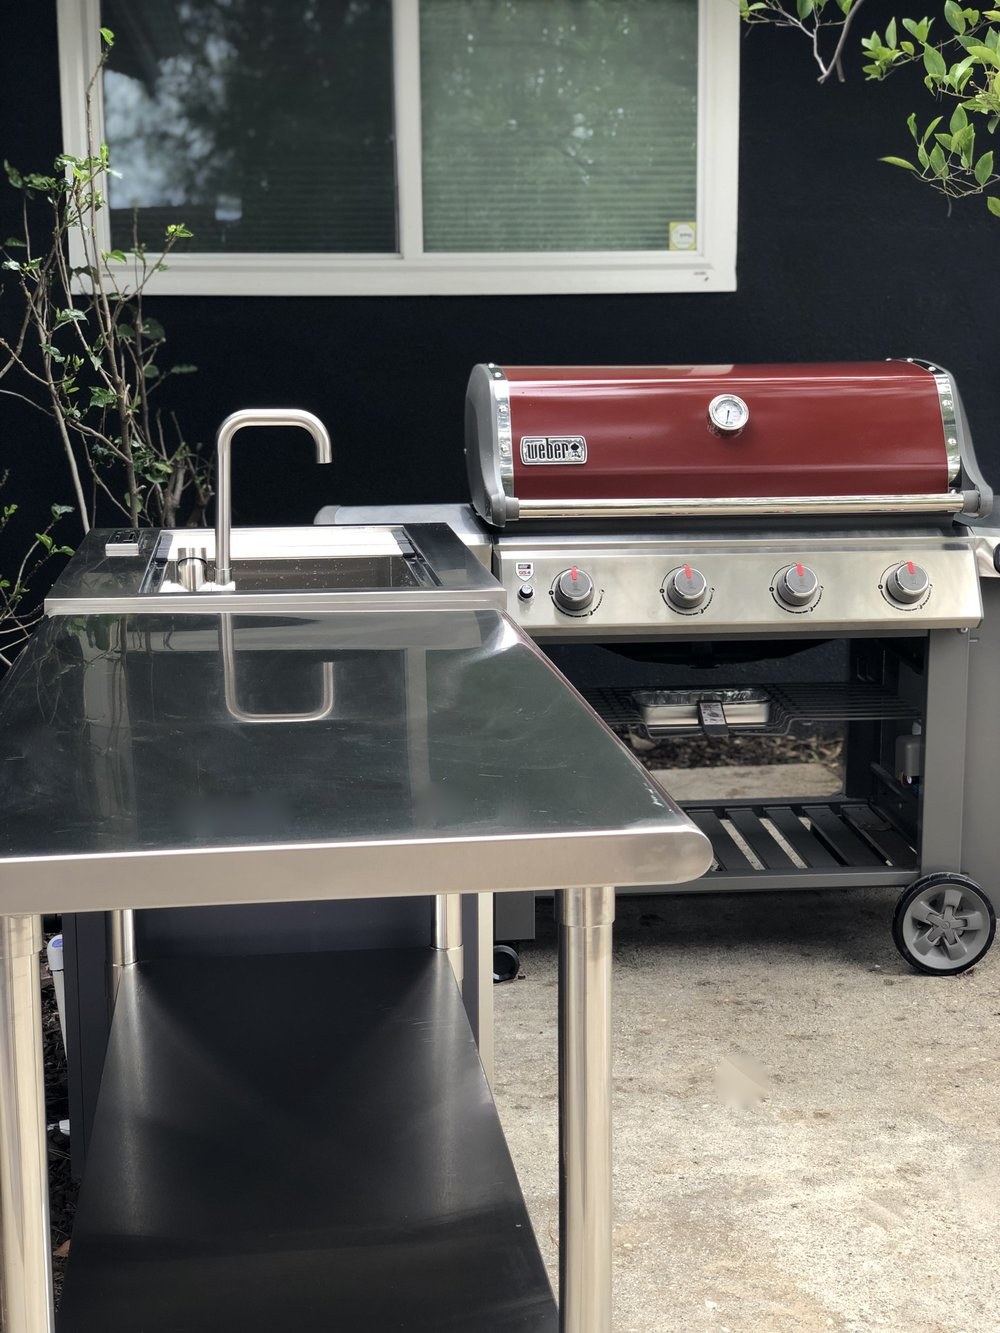 Our new outdoor kitchen consists of a stainless steel work table, a sink with waste water that flows to a nearby orange tree, and a Weber Genesis II E-410 grill. Our next addition will hopefully be an outdoor wok.